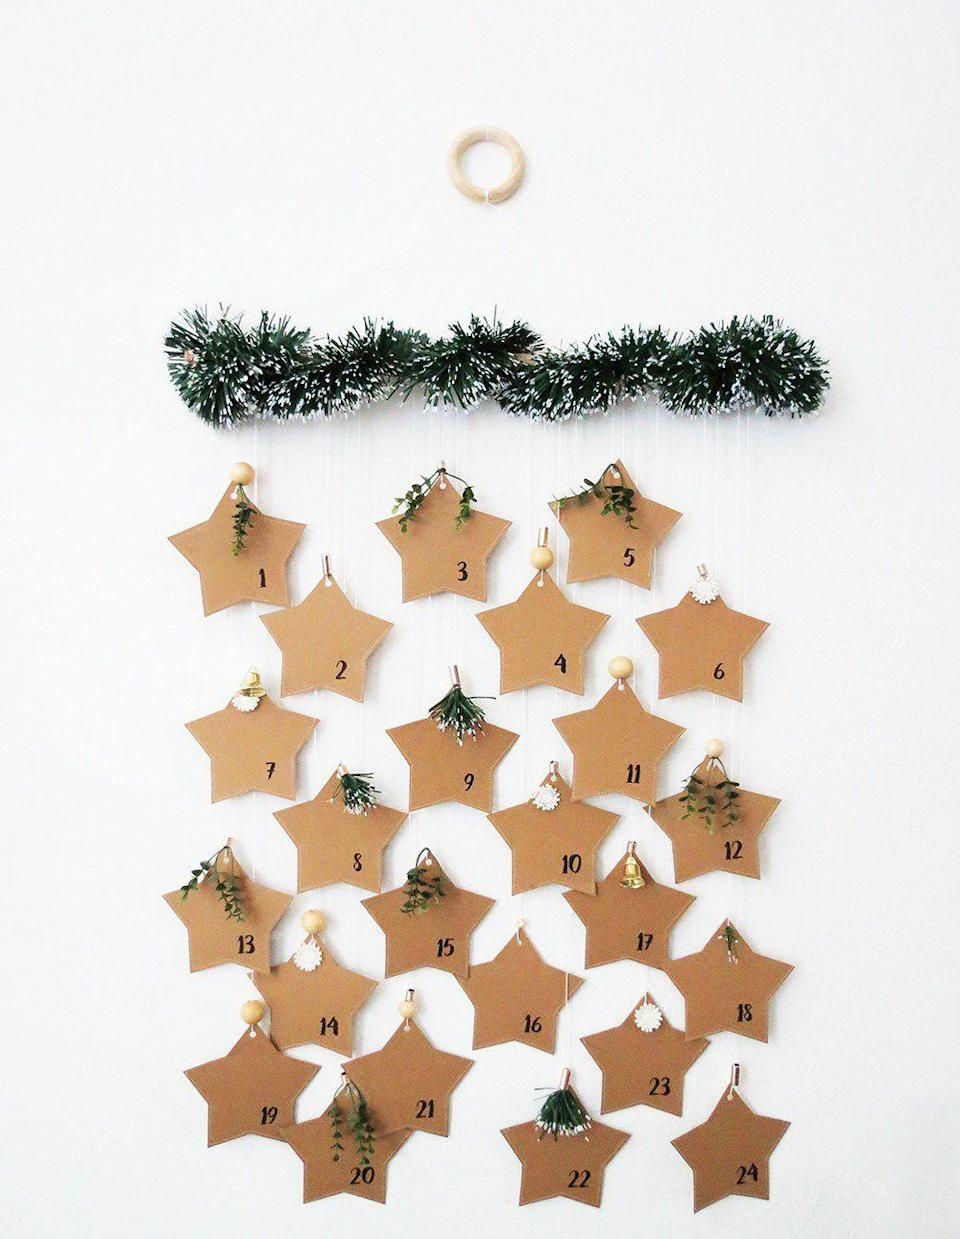 """<p>These paper stars may look thin, but they're actually ennvlopes with a slot big enough to put a small treat inside. You can hang them from a dowel with embroidery thread. </p><p><em><a href=""""https://www.ohohdeco.com/diy-paper-star-advent-calendar/"""" rel=""""nofollow noopener"""" target=""""_blank"""" data-ylk=""""slk:Get the tutorial at Oh Oh Deco »"""" class=""""link rapid-noclick-resp"""">Get the tutorial at Oh Oh Deco »</a></em></p>"""